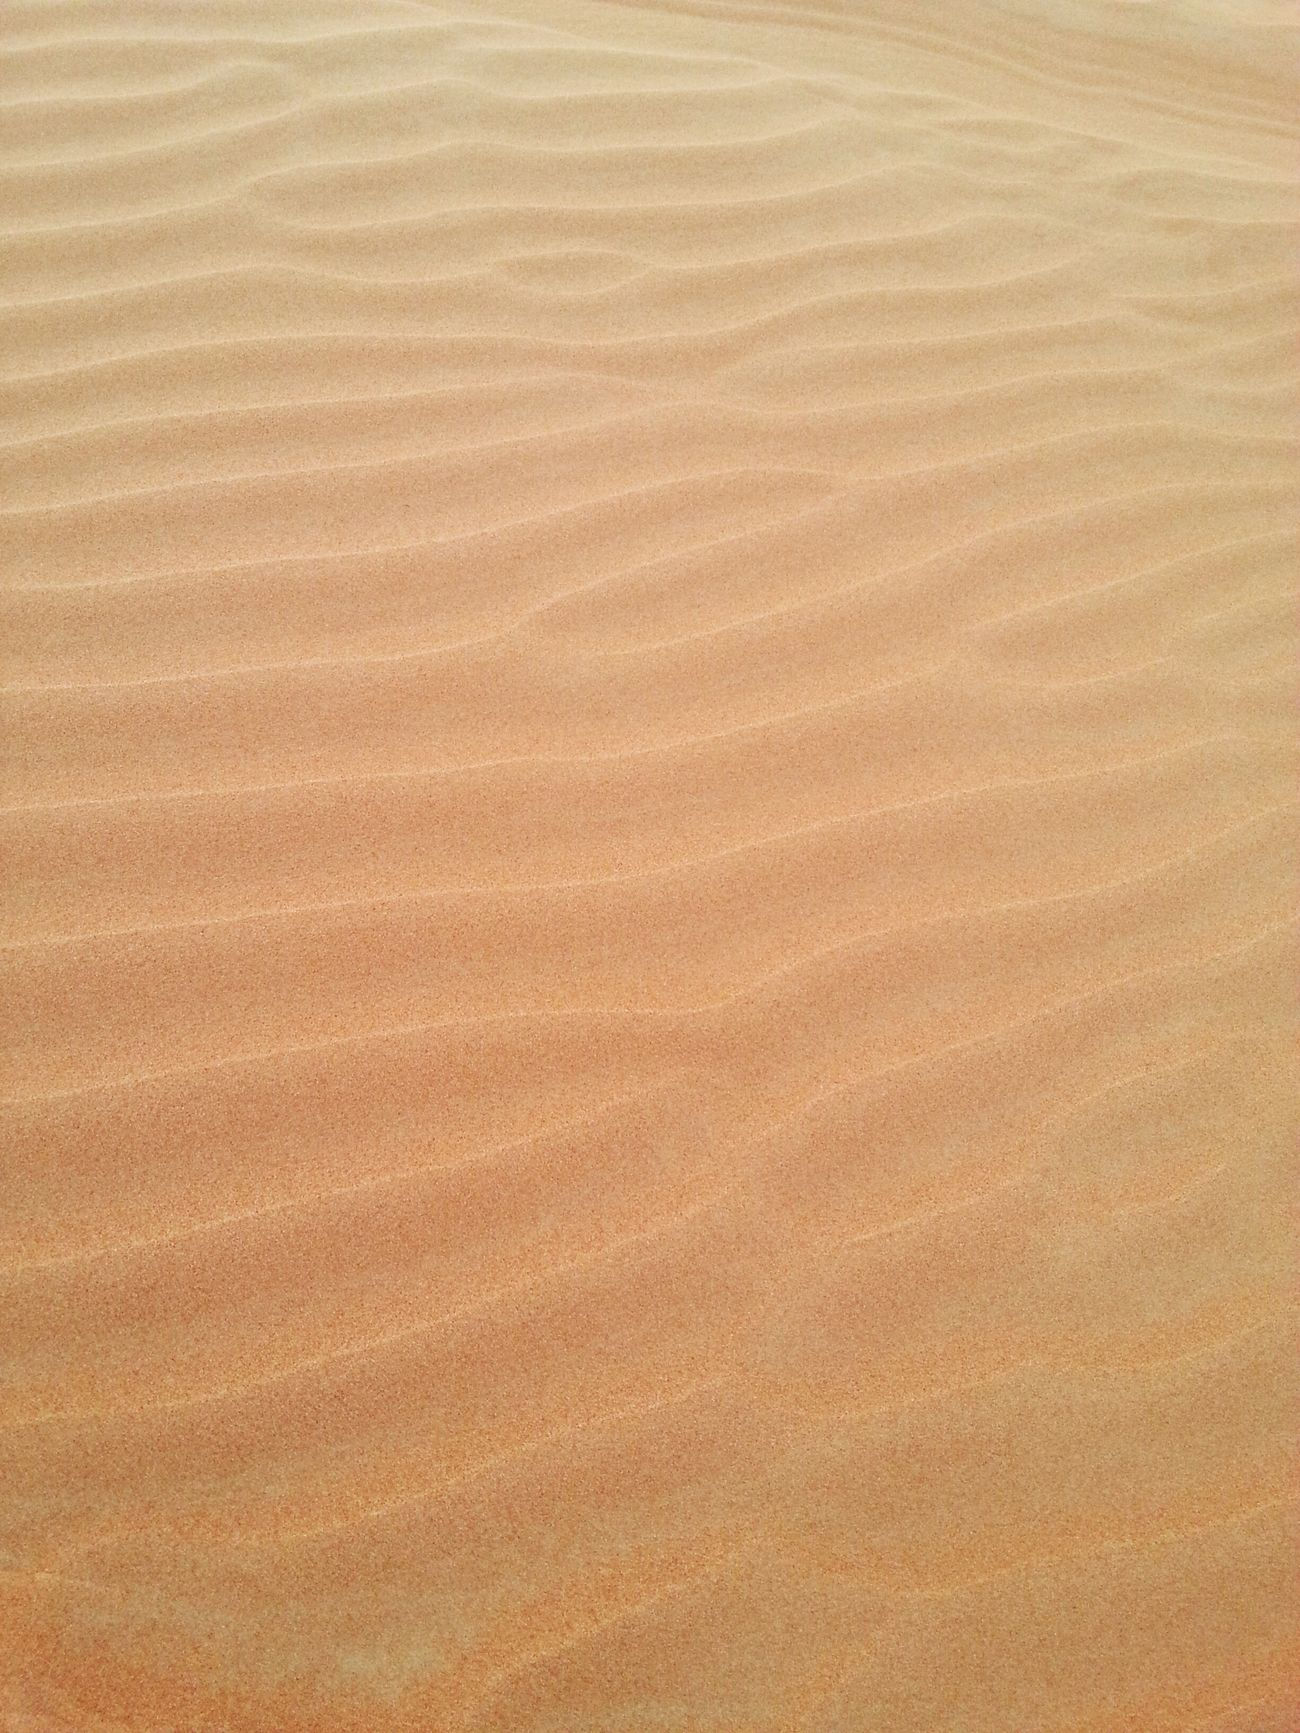 DESERT SAND. It was so soft and fine like coffee mate.UAE Sand Safari Enjoying Life Seize The Day Relaxing Adventure Eyem Best Shots Eyem Gallery Eyemphotos Hello World